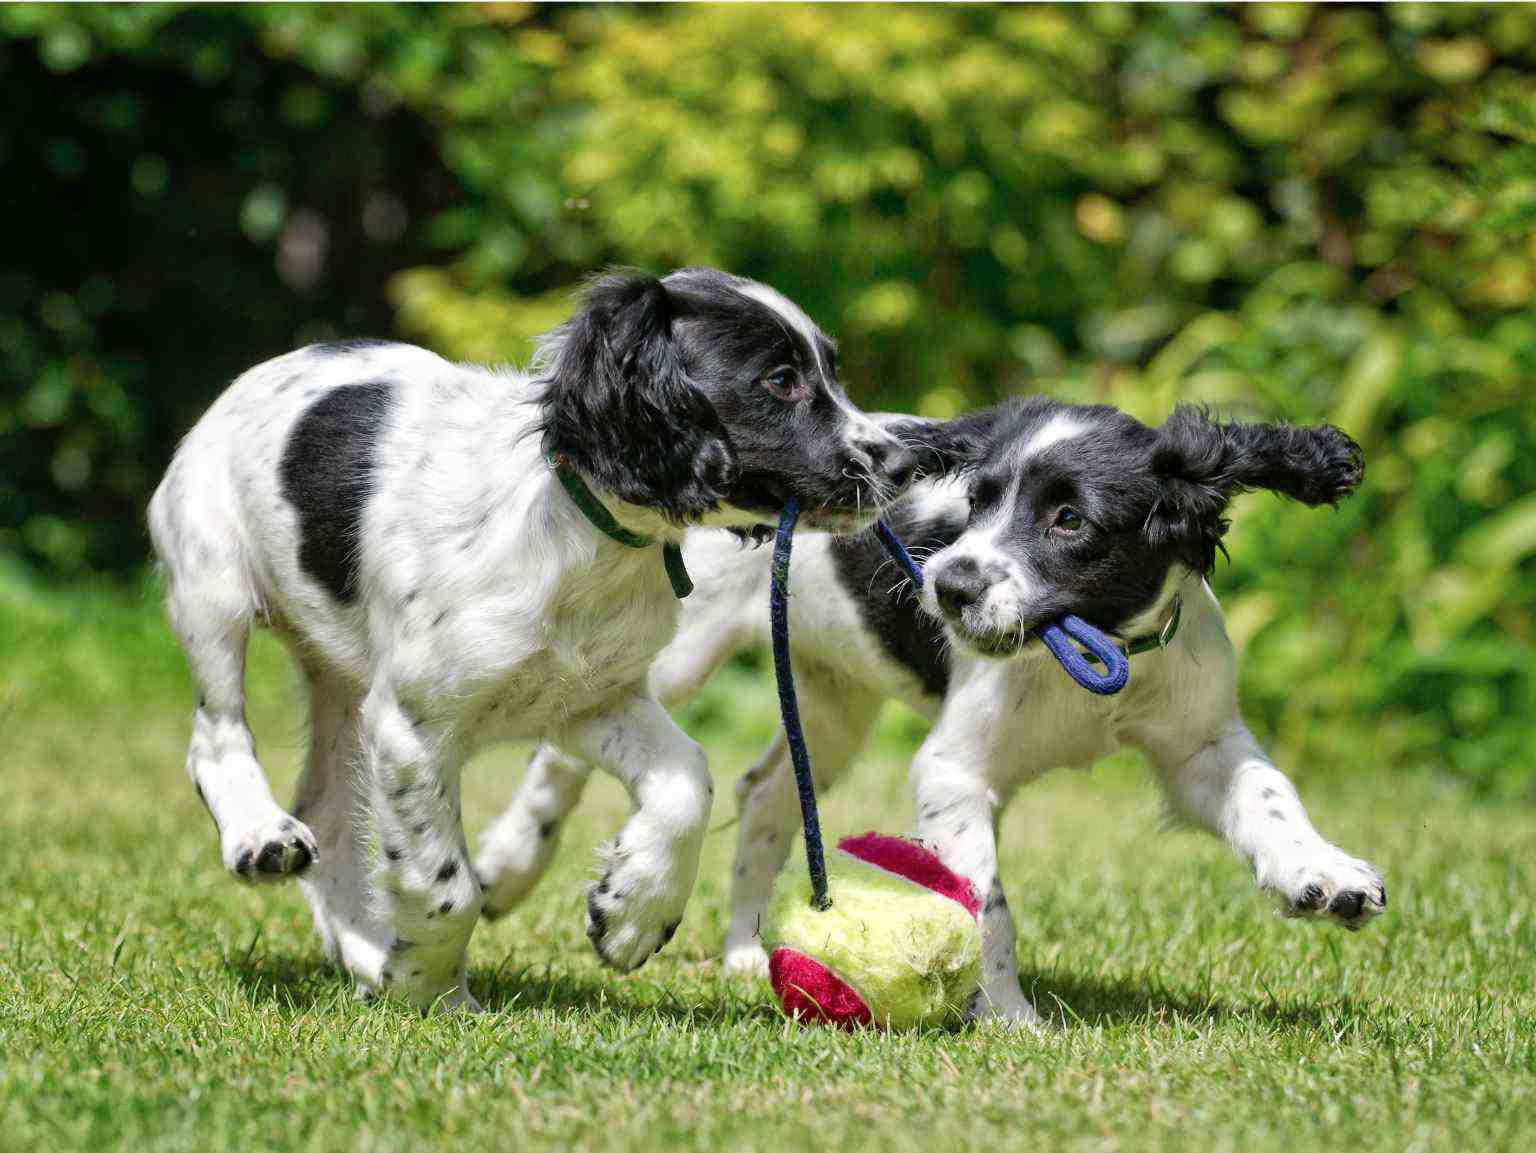 Two puppies playing with a rope toy